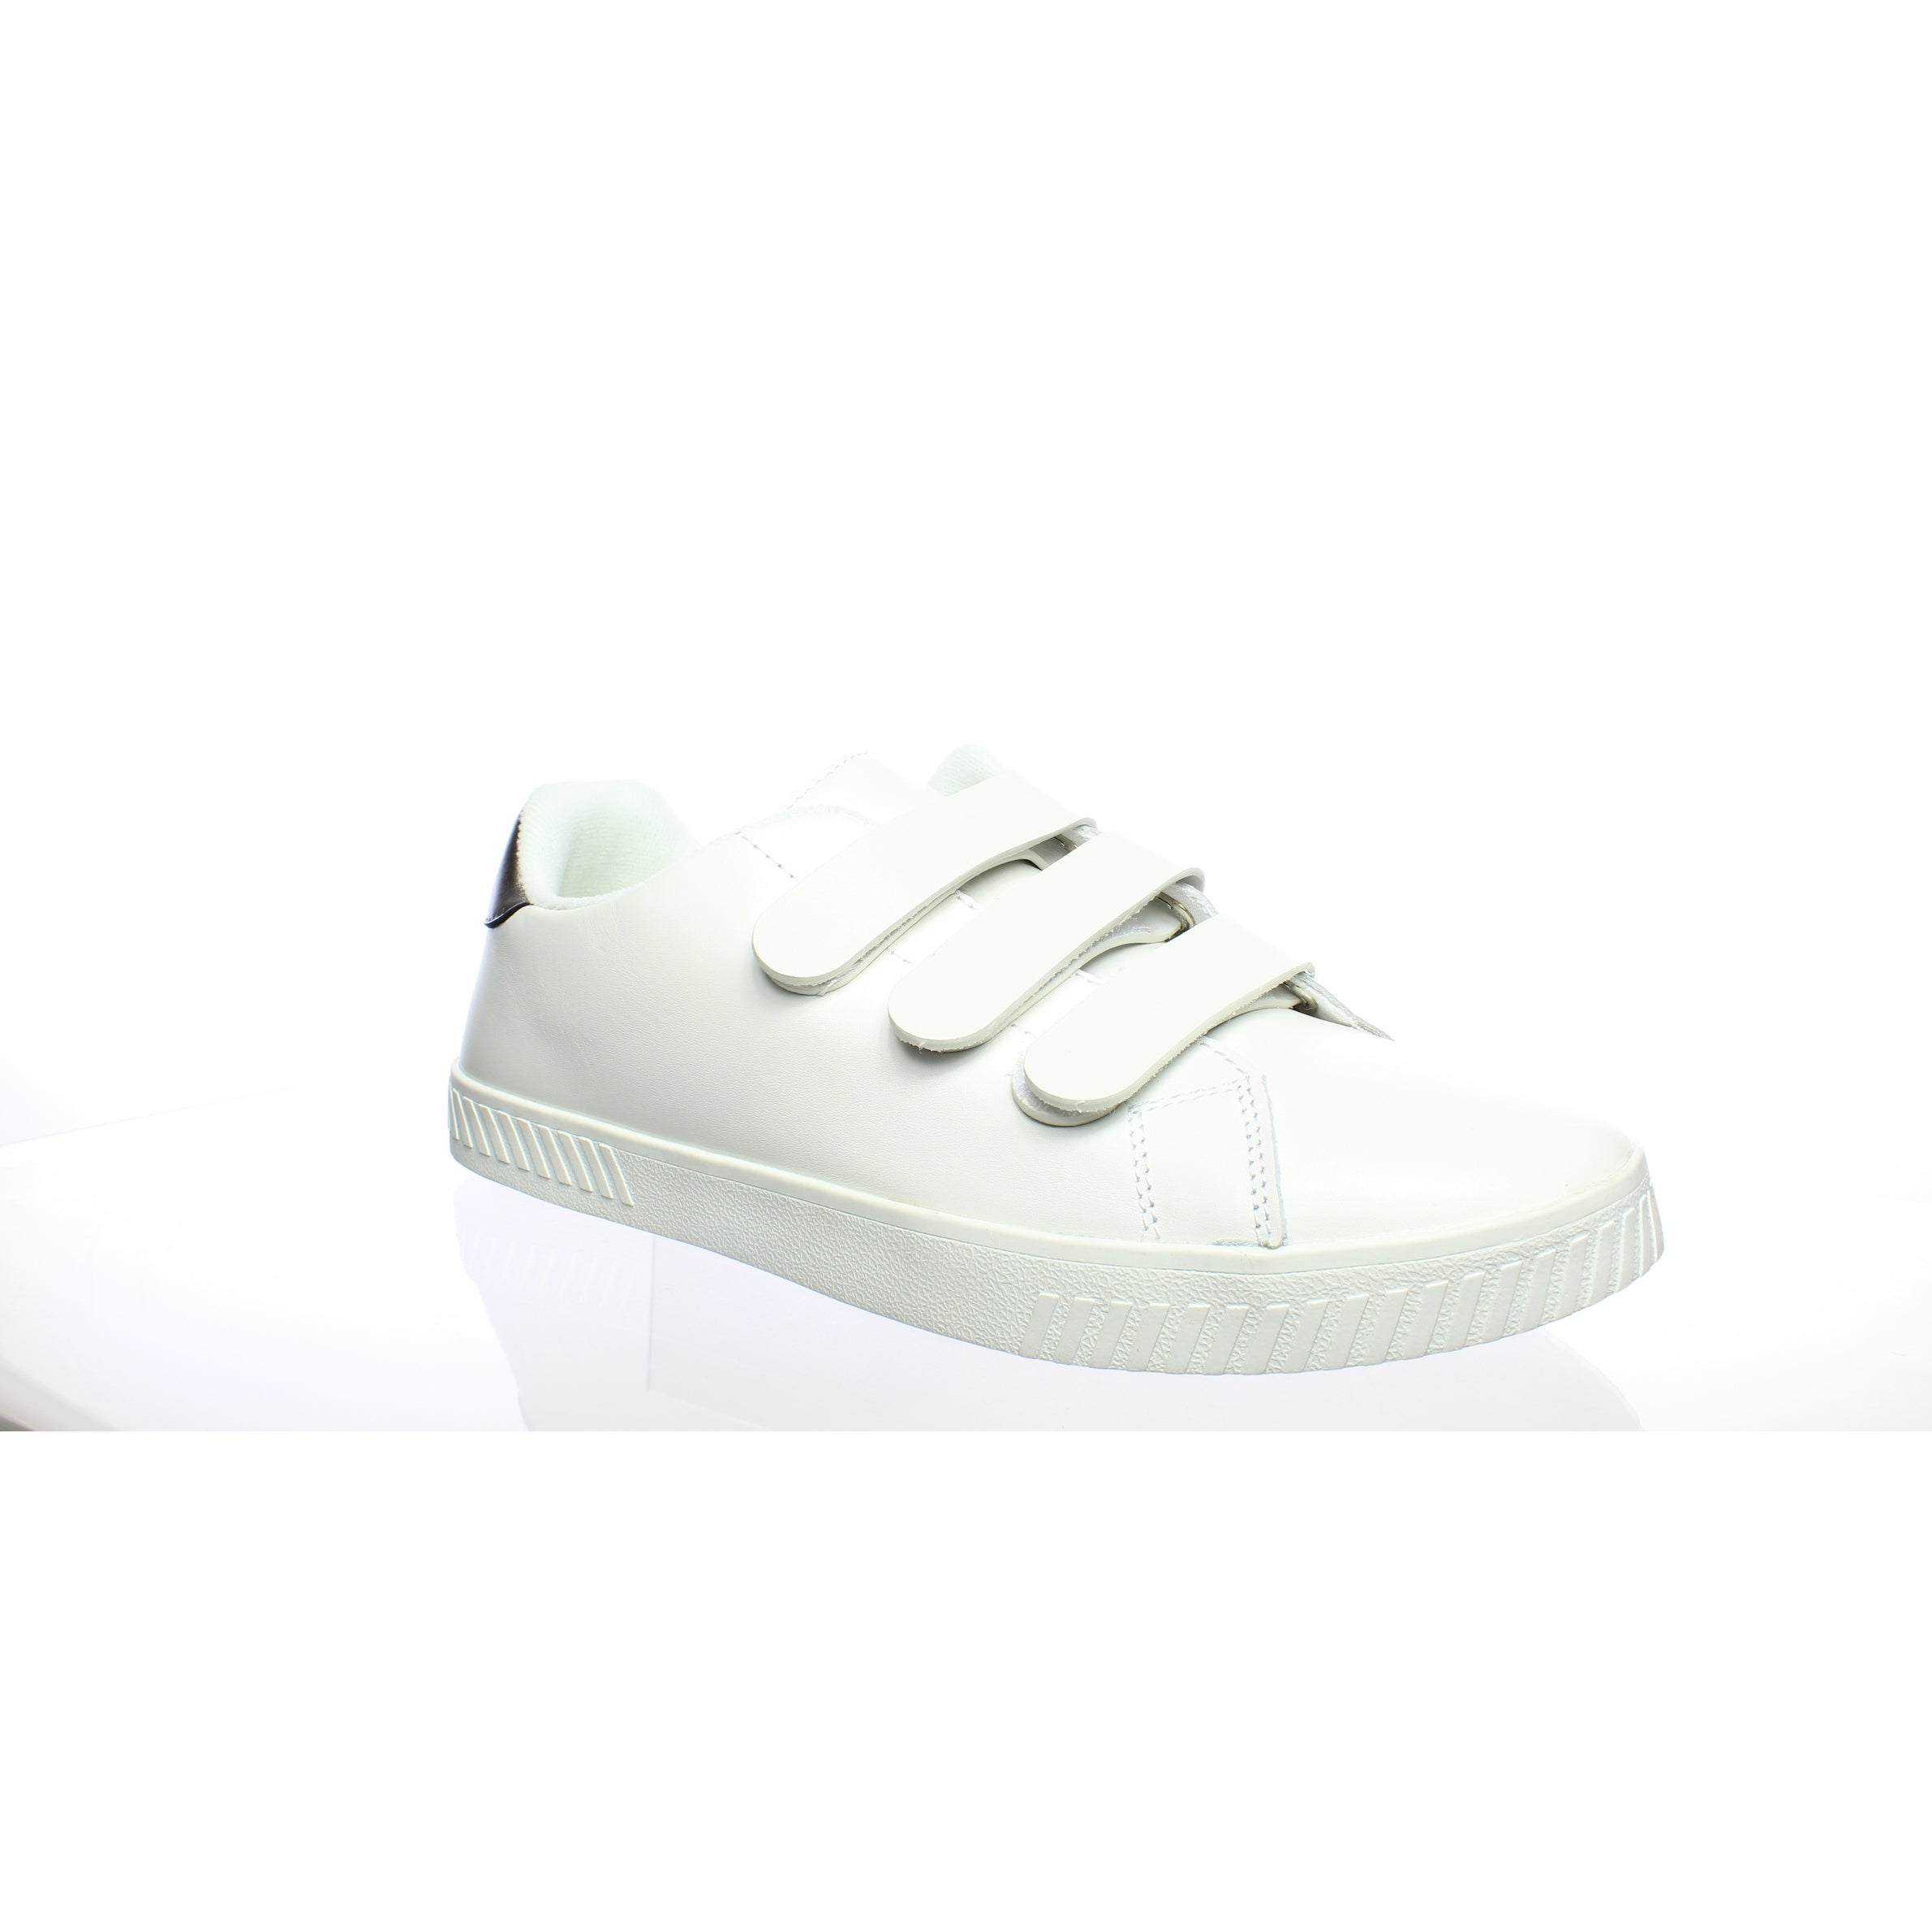 Buy Leather Tretorn Men's Athletic Shoes Online at Overstock